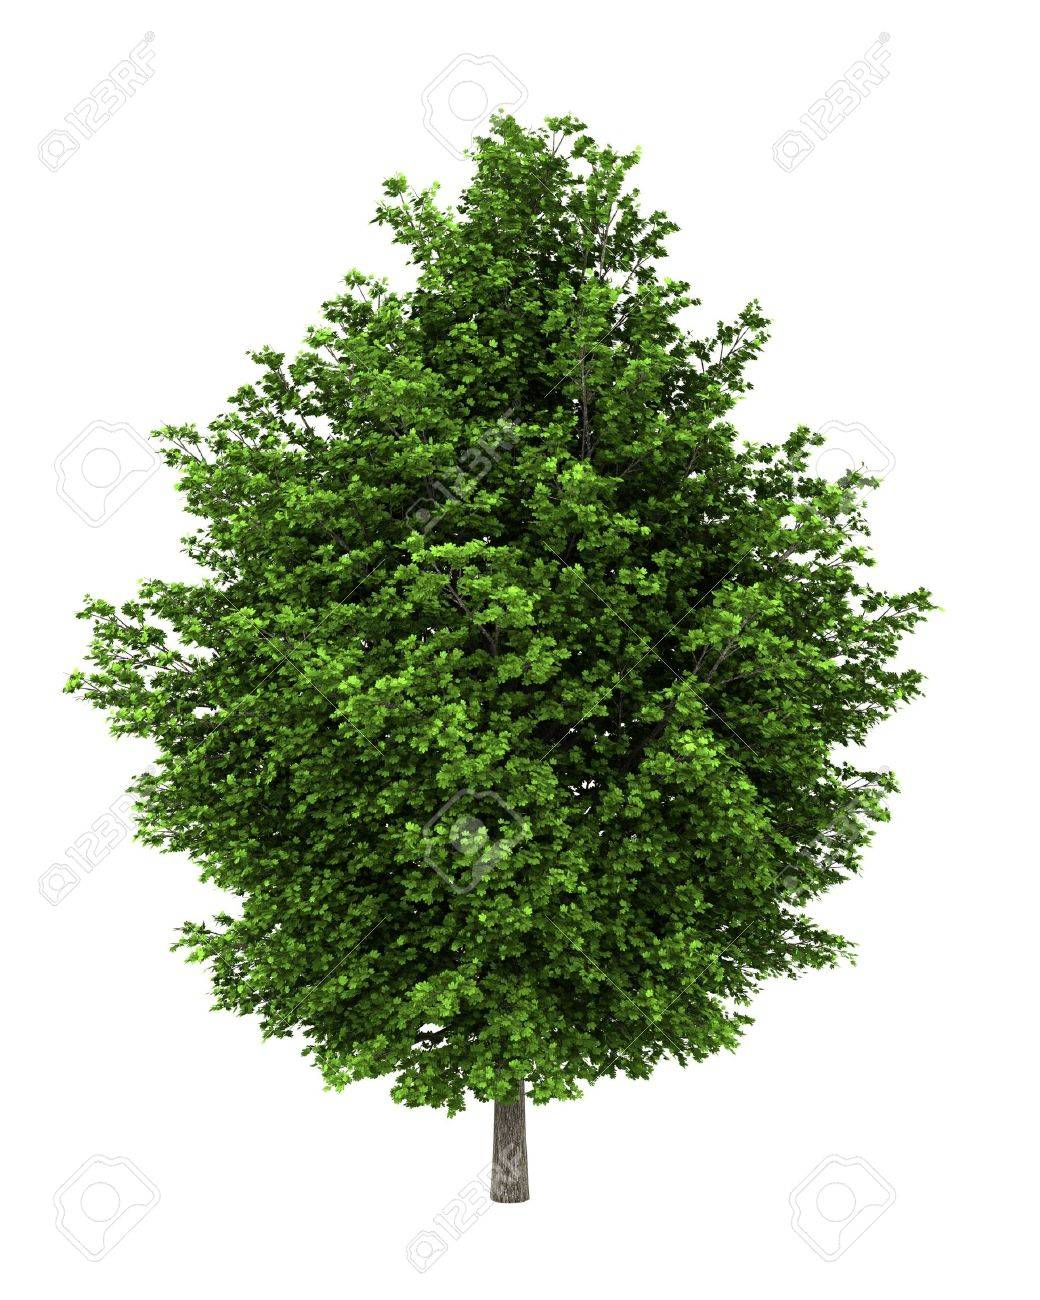 silver maple tree isolated on white background Stock Photo - 11708910